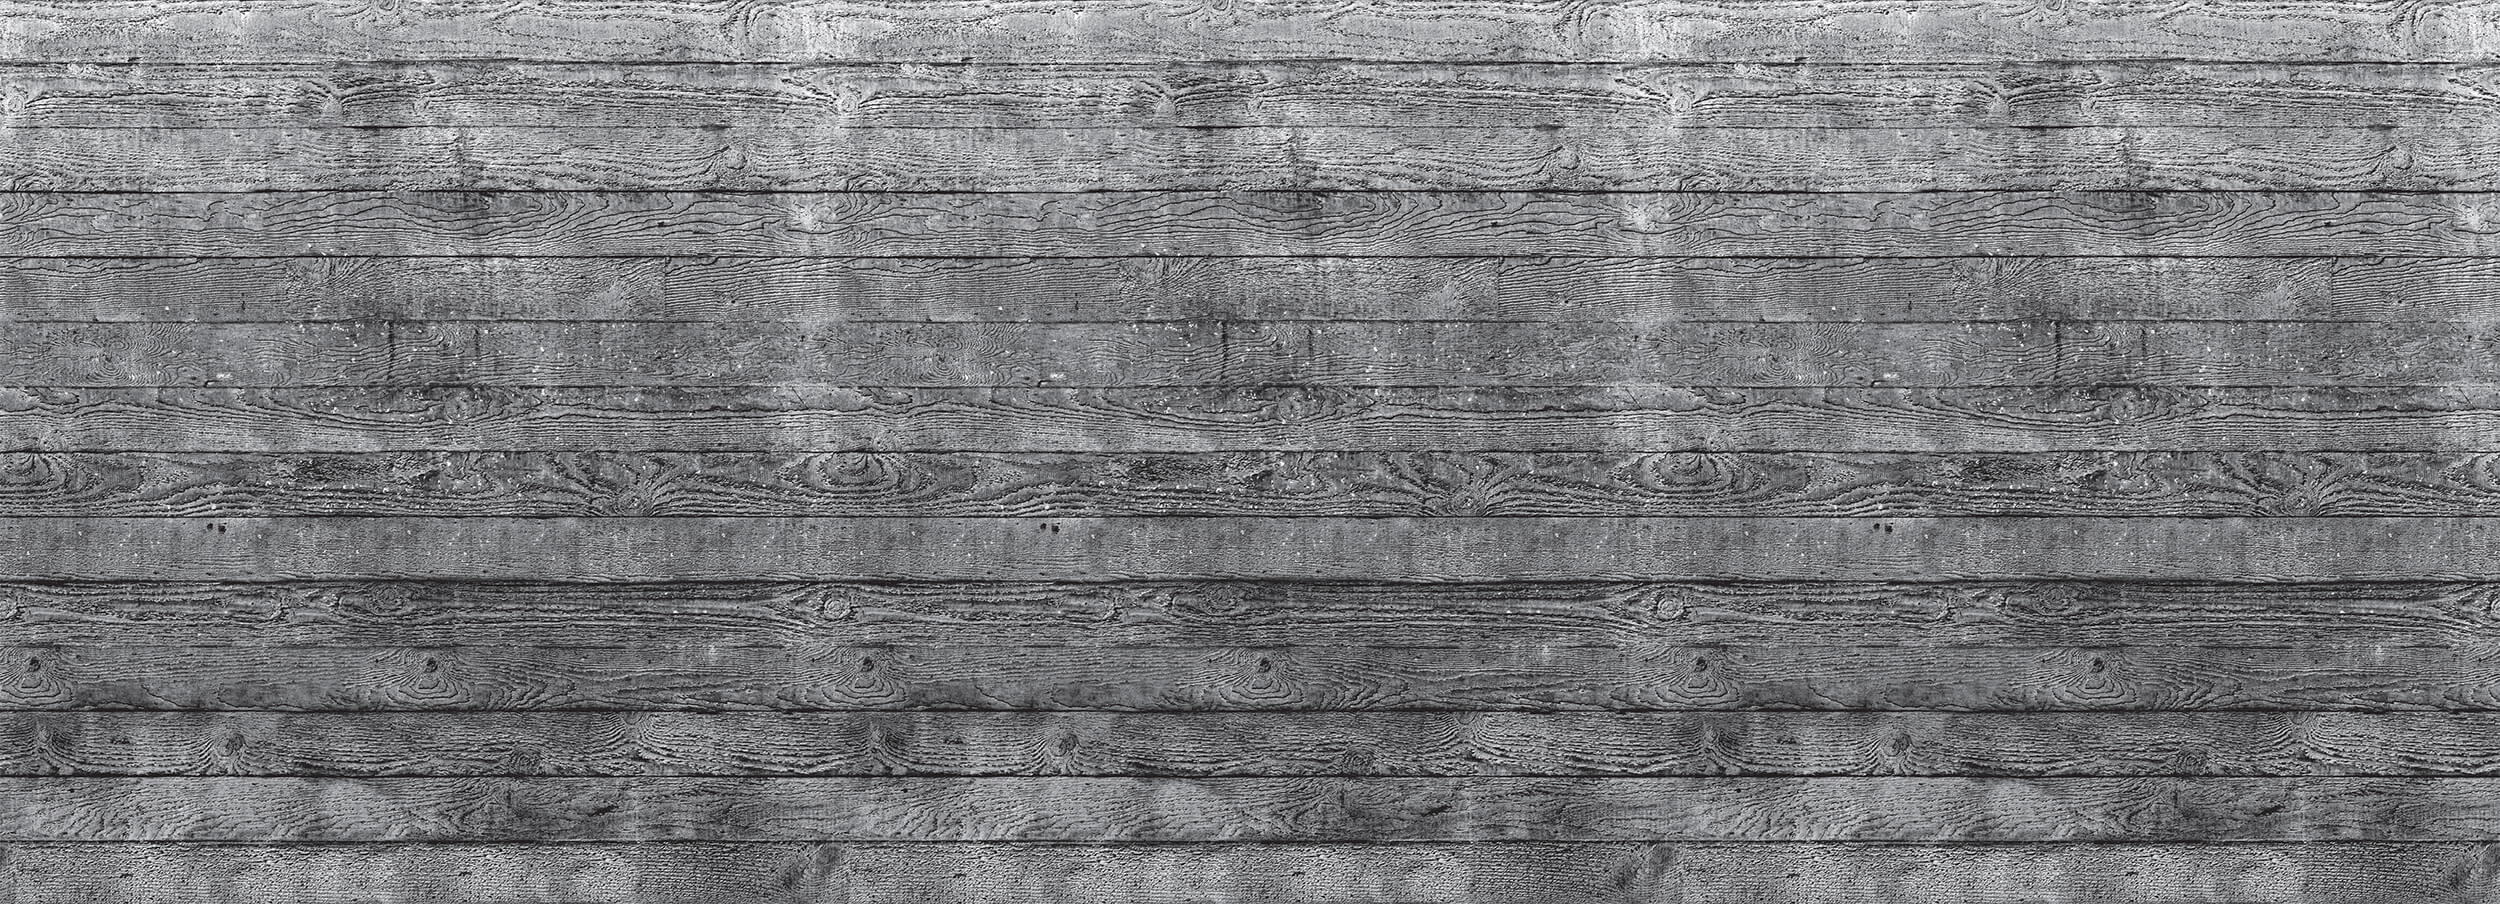 Concrete Wood Slate